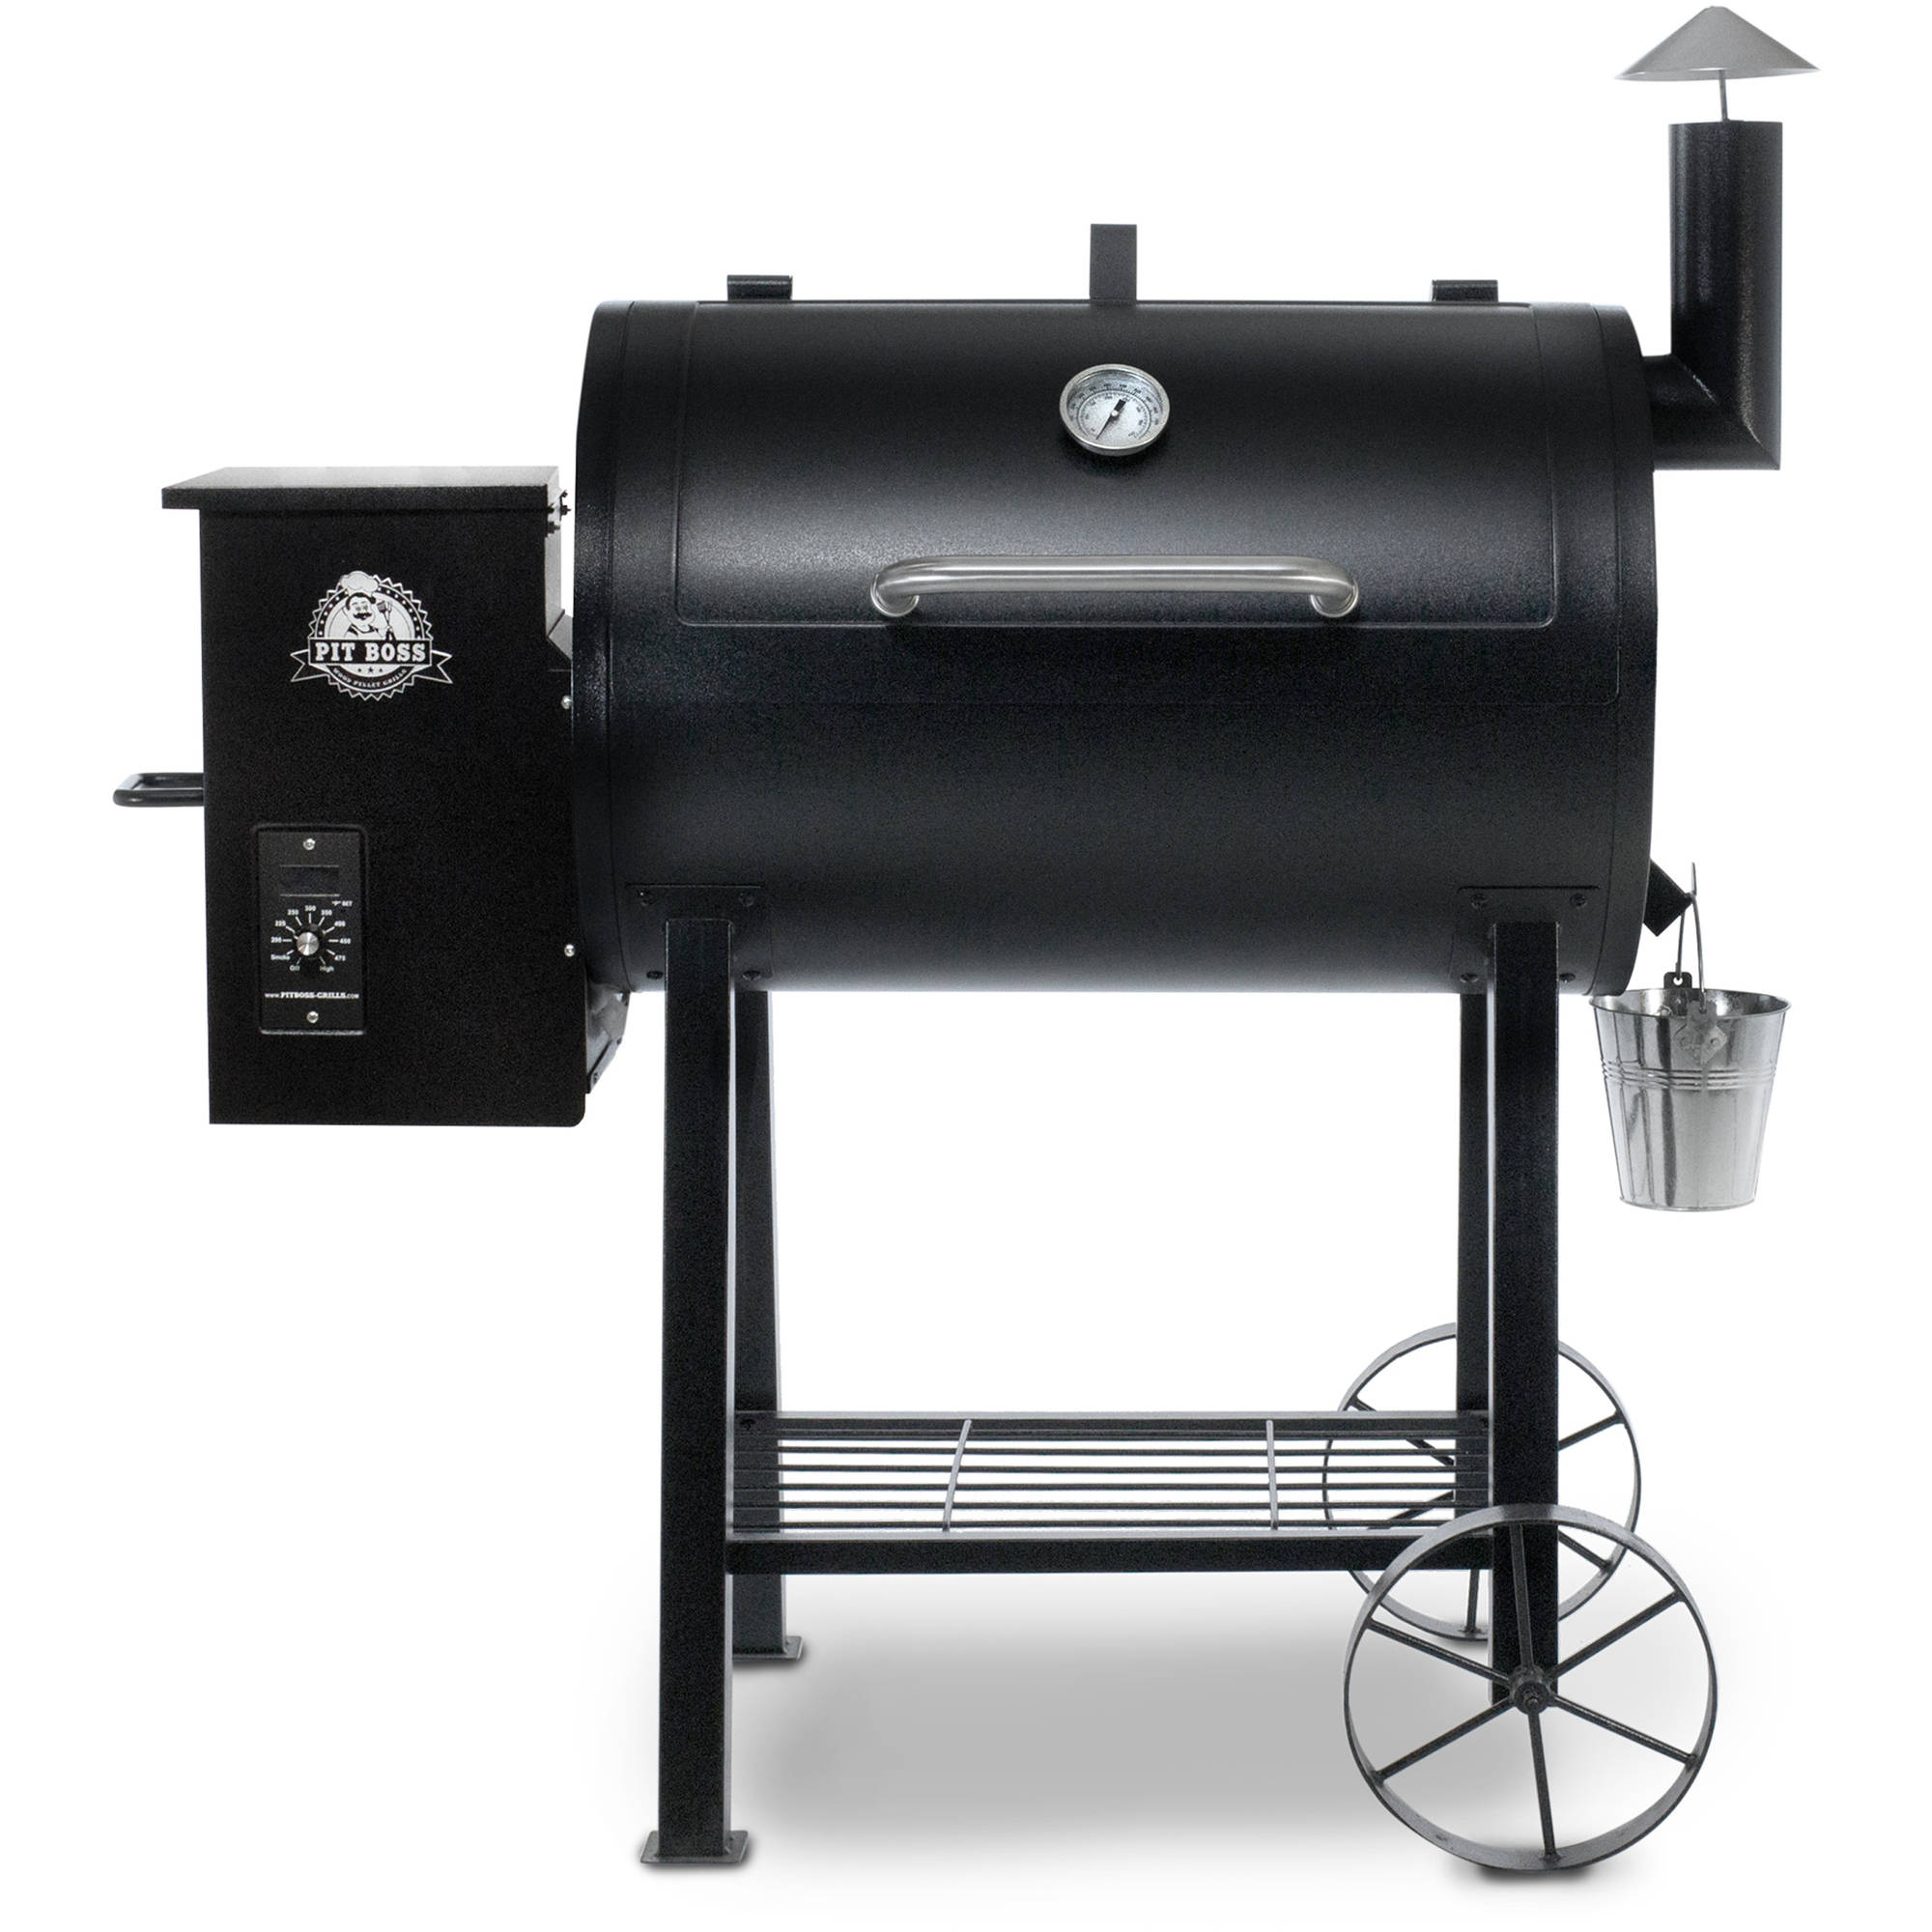 outdoor grill pit boss 820fb wood fired pellet grill w/ flame broiler DMKOQBX